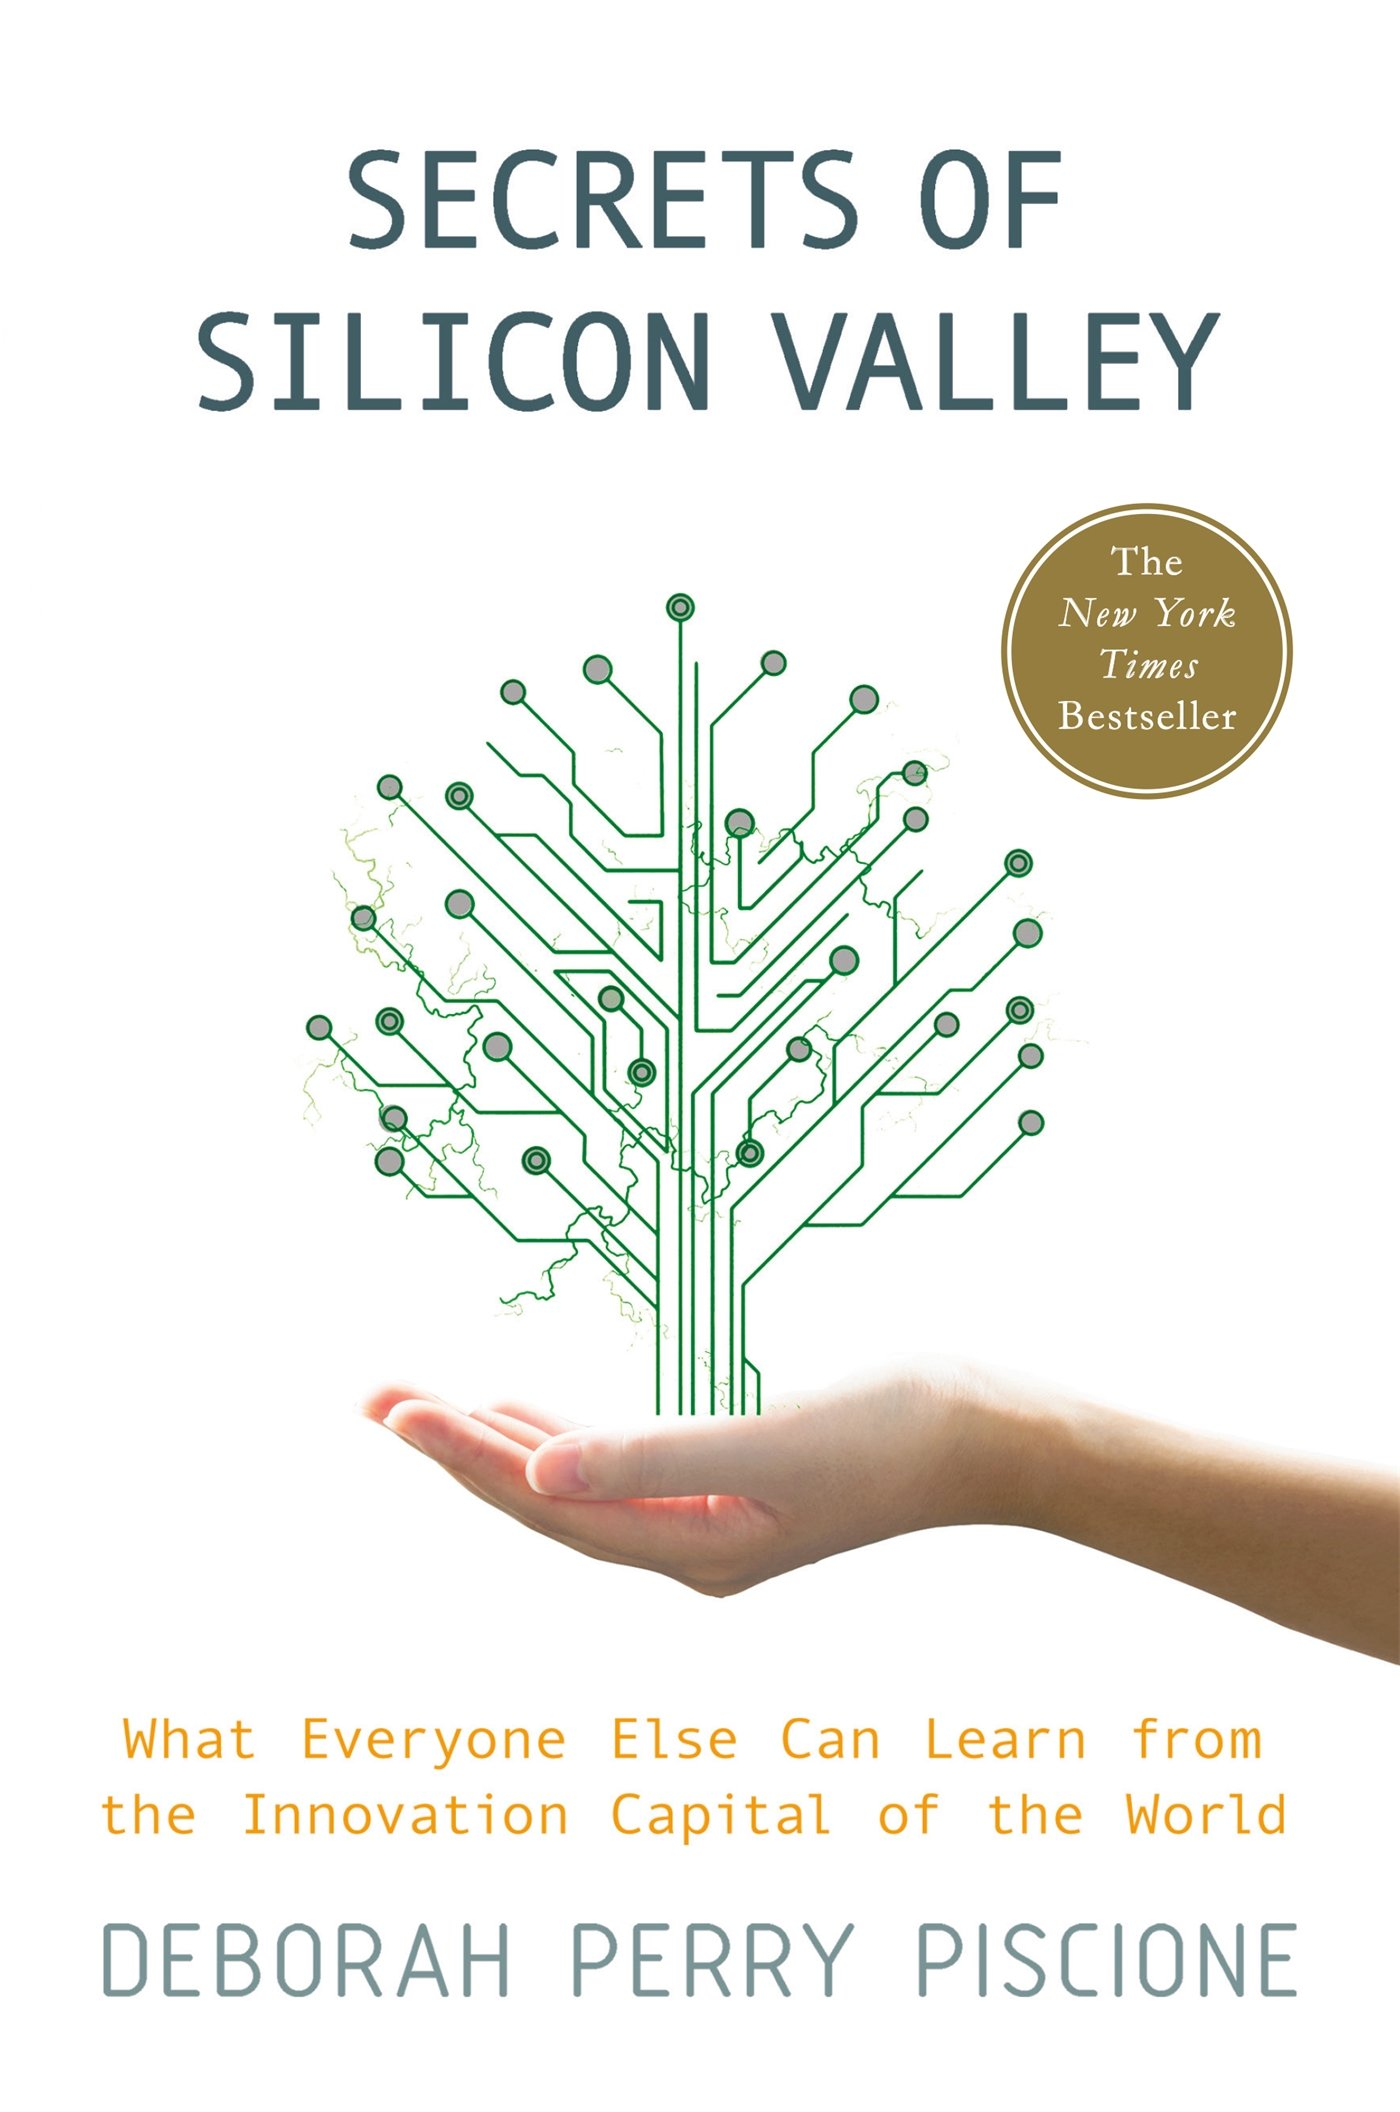 Secrets of Silicon Valley: What Everyone Else Can Learn from the Innovation Capital of the World: Deborah Perry Piscione: 9781137279170: Amazon.com: Books